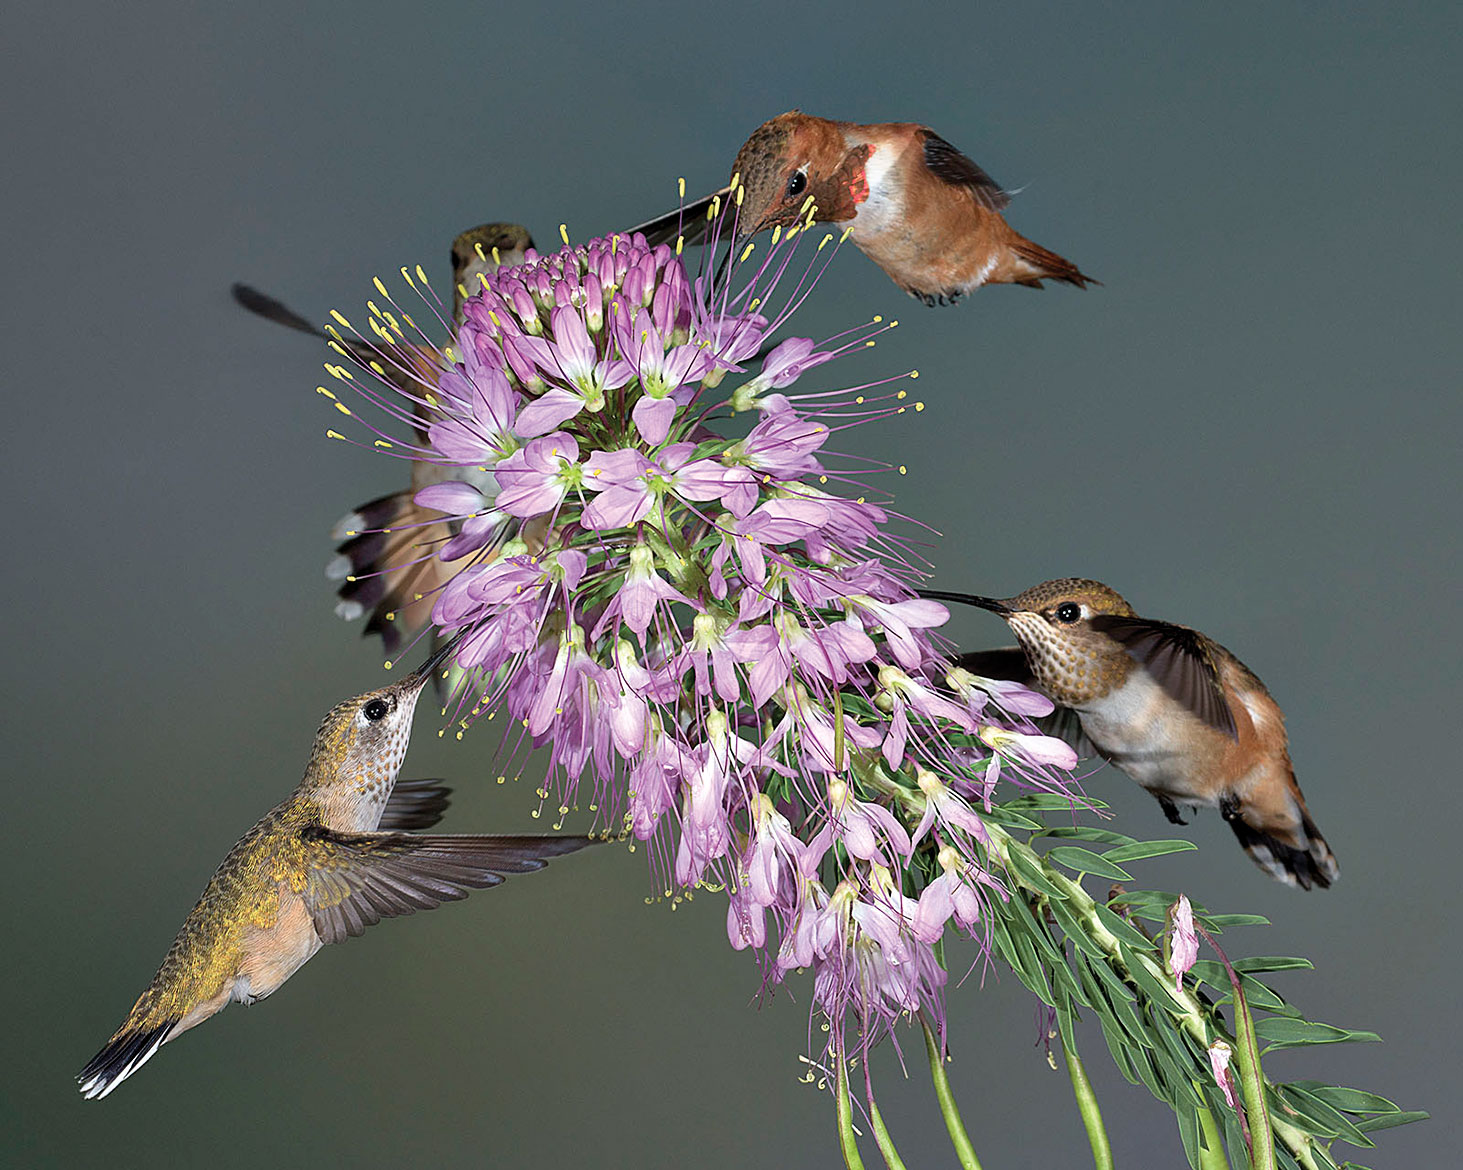 Jon Williams placed third for his image Humming Birds Sharing